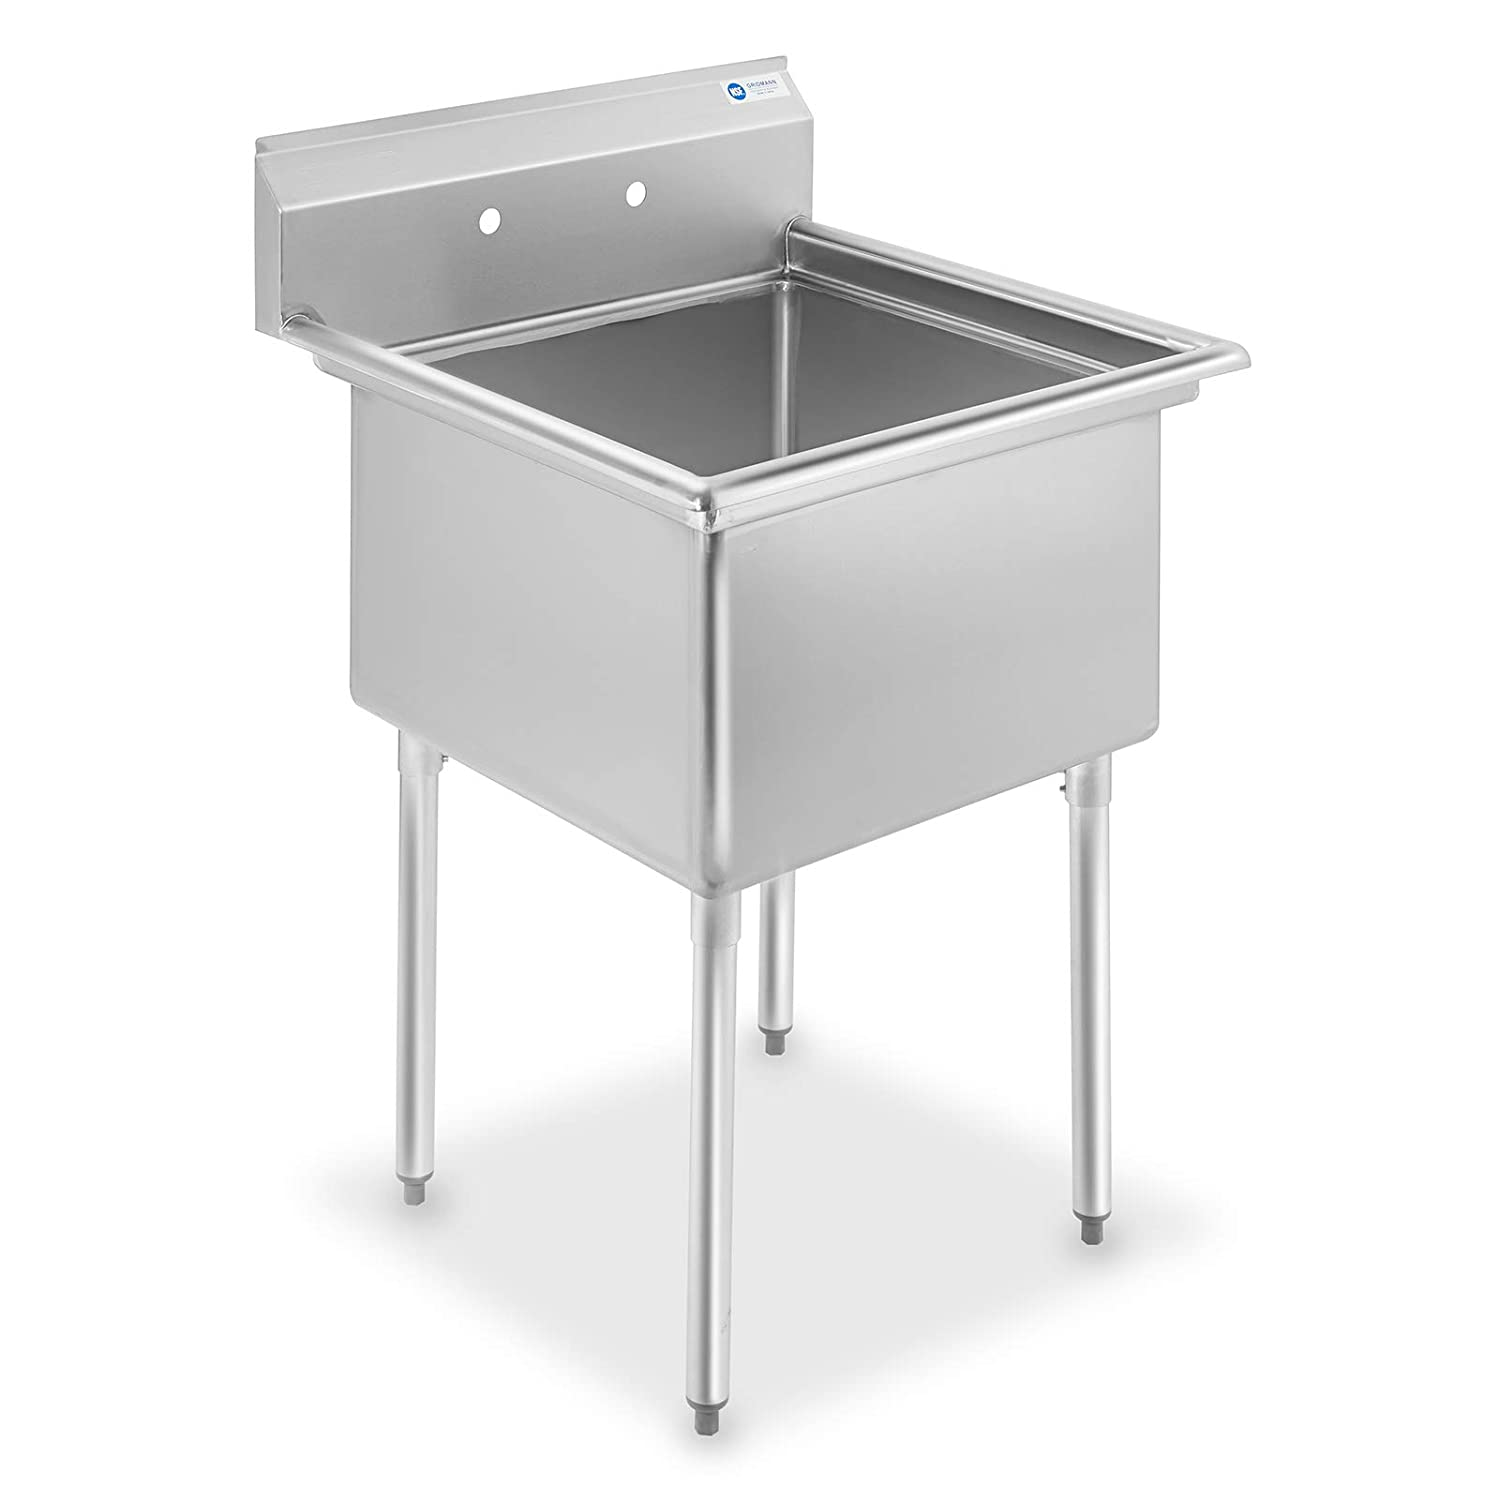 - Amazon.com: GRIDMANN 1 Compartment NSF Stainless Steel Commercial